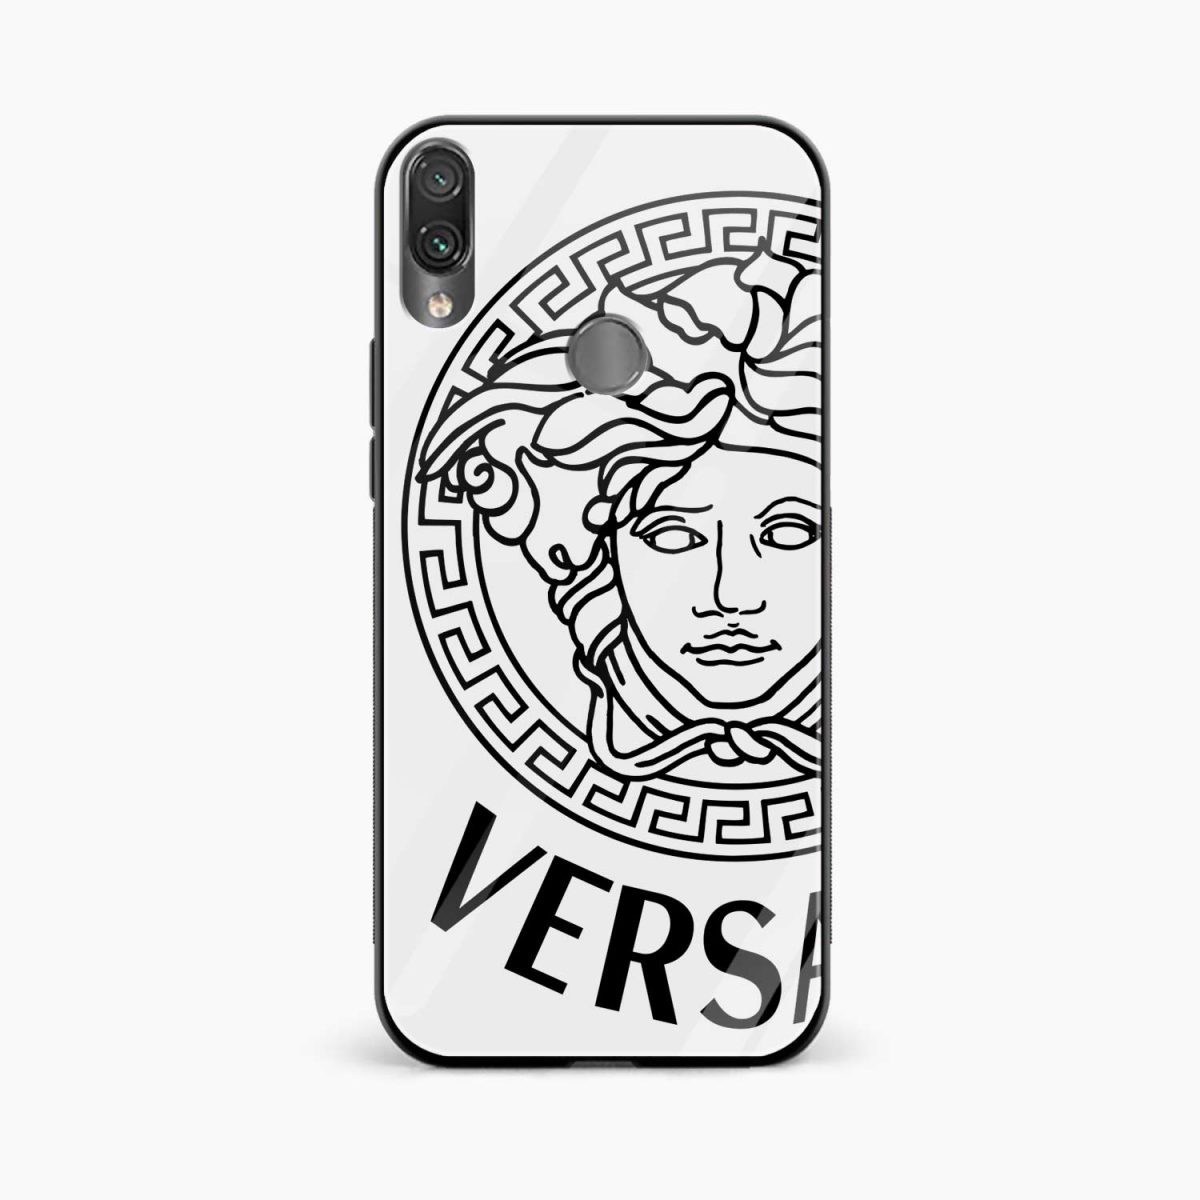 versace black white front view redmi note 7 back cover